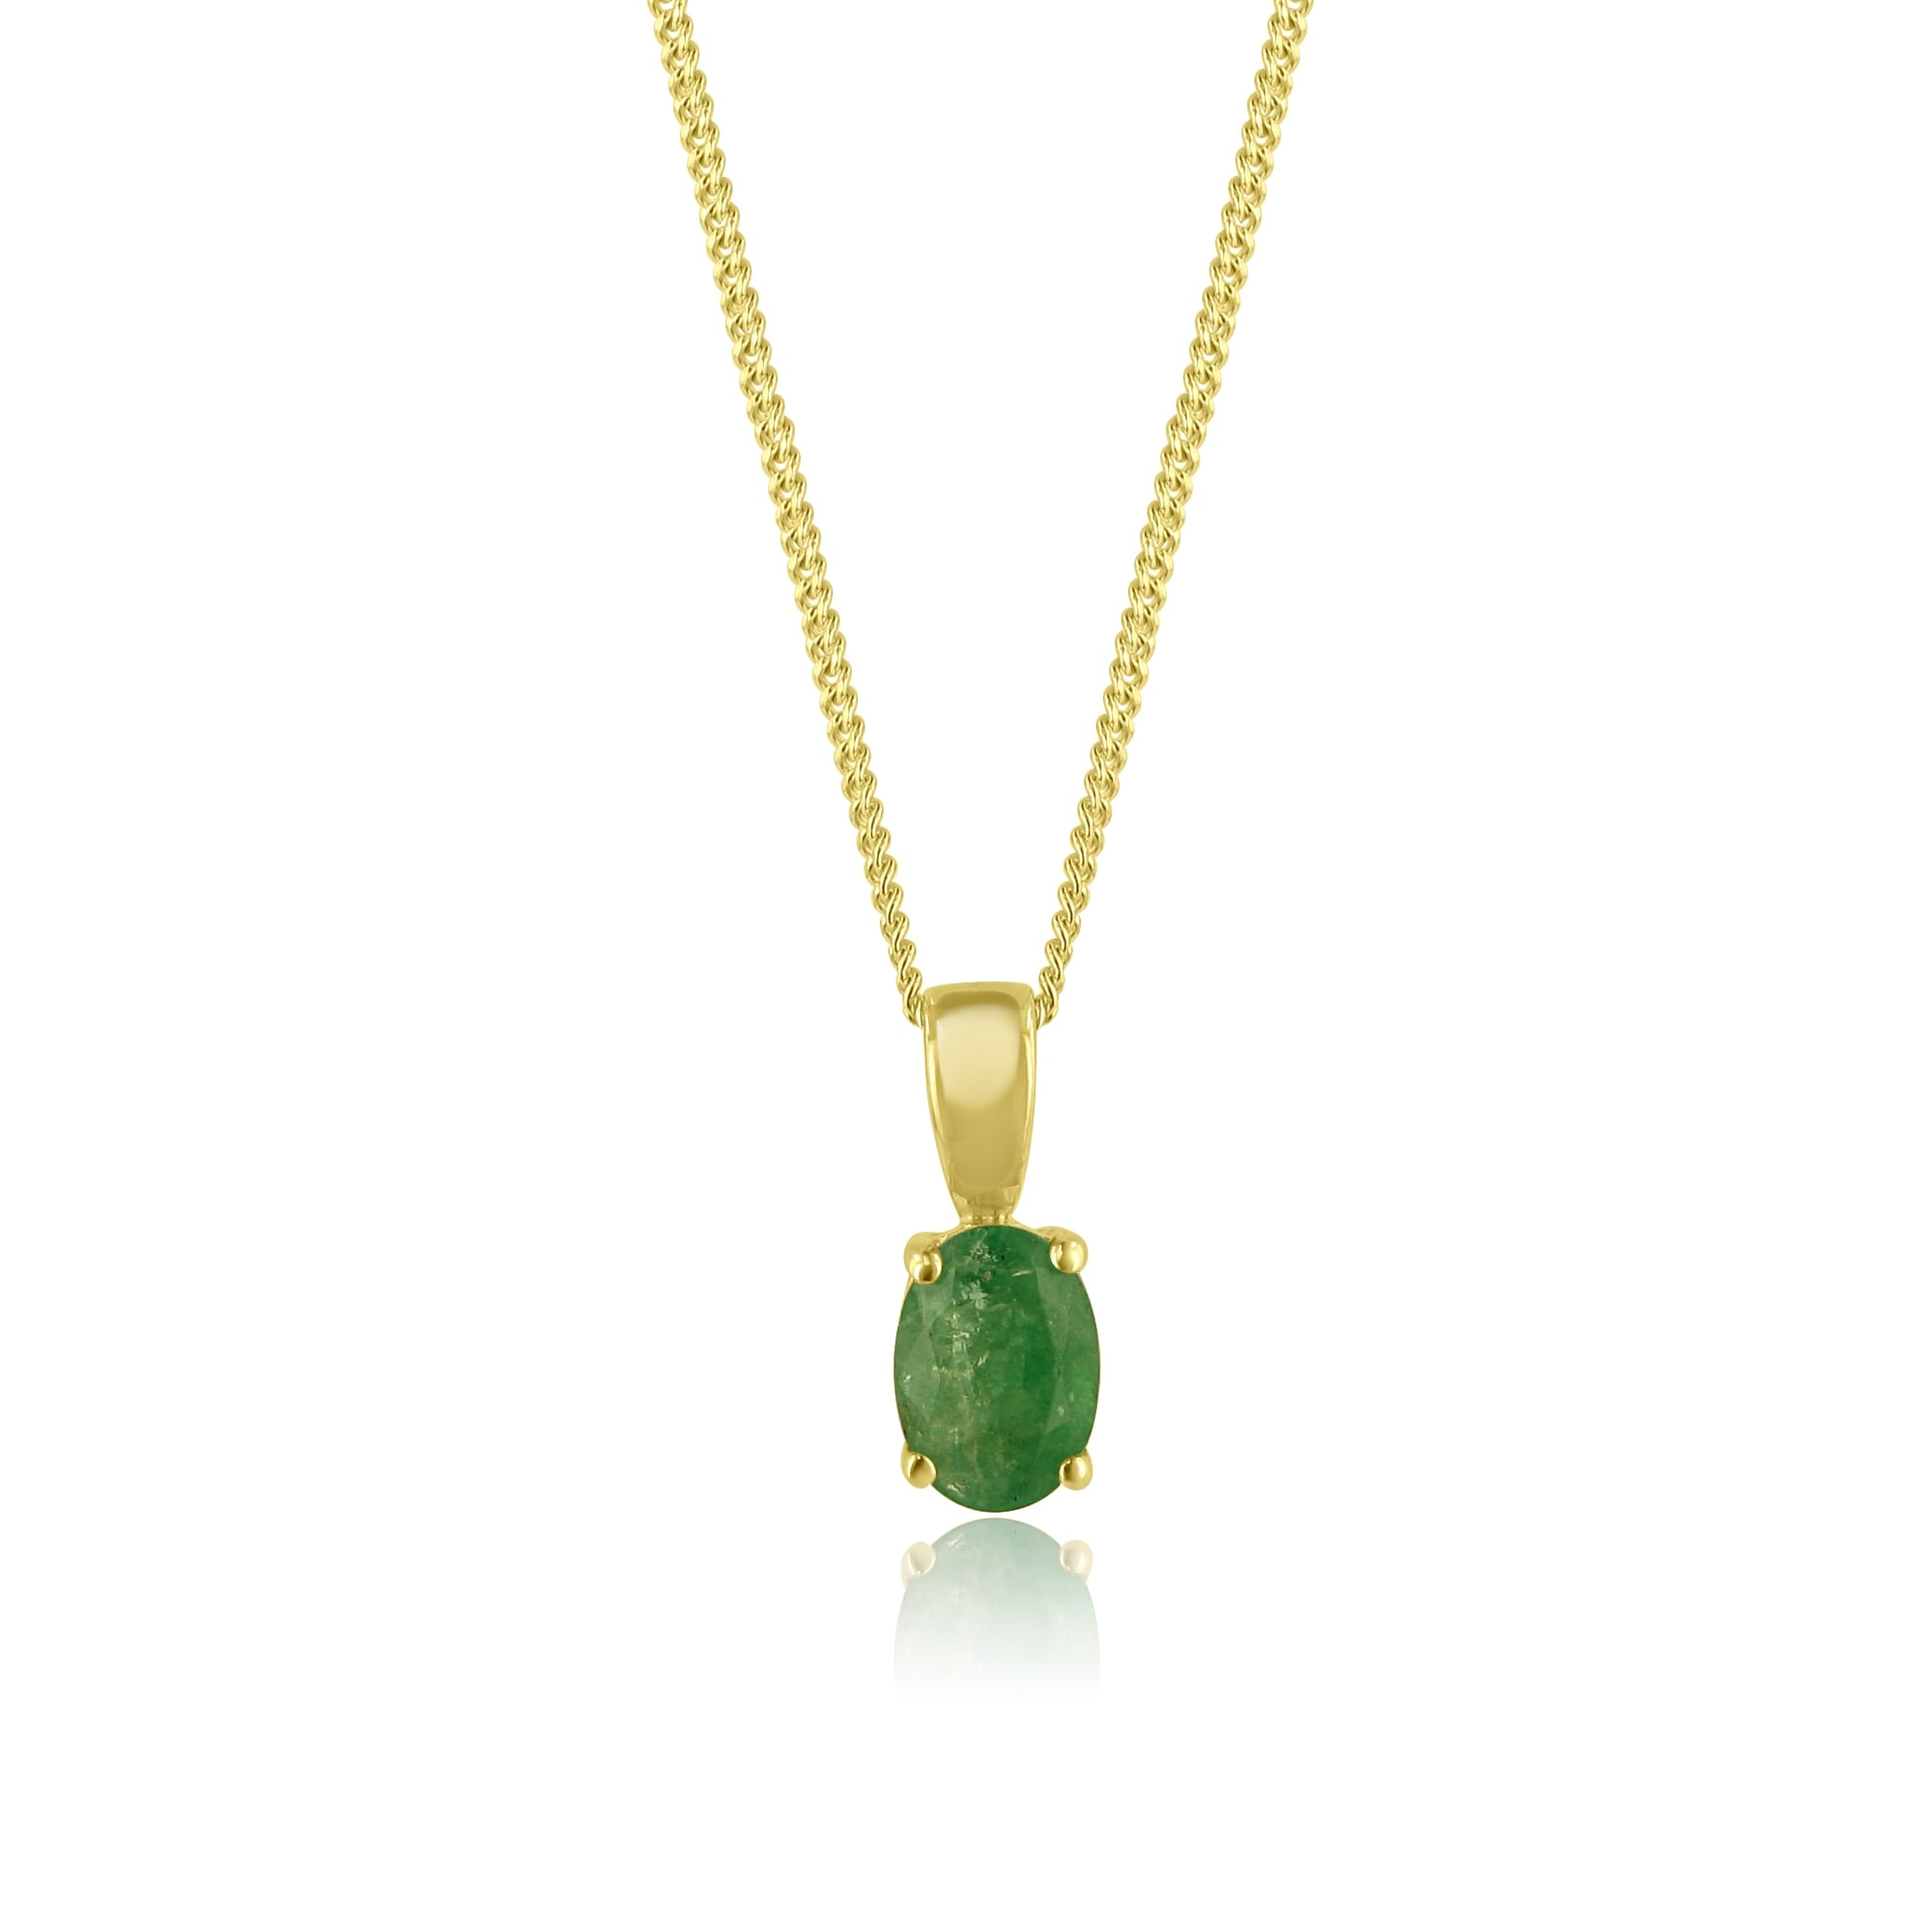 cut necklace emerald products wendy tourmaline stone collections pendant nichol necklaces chokers